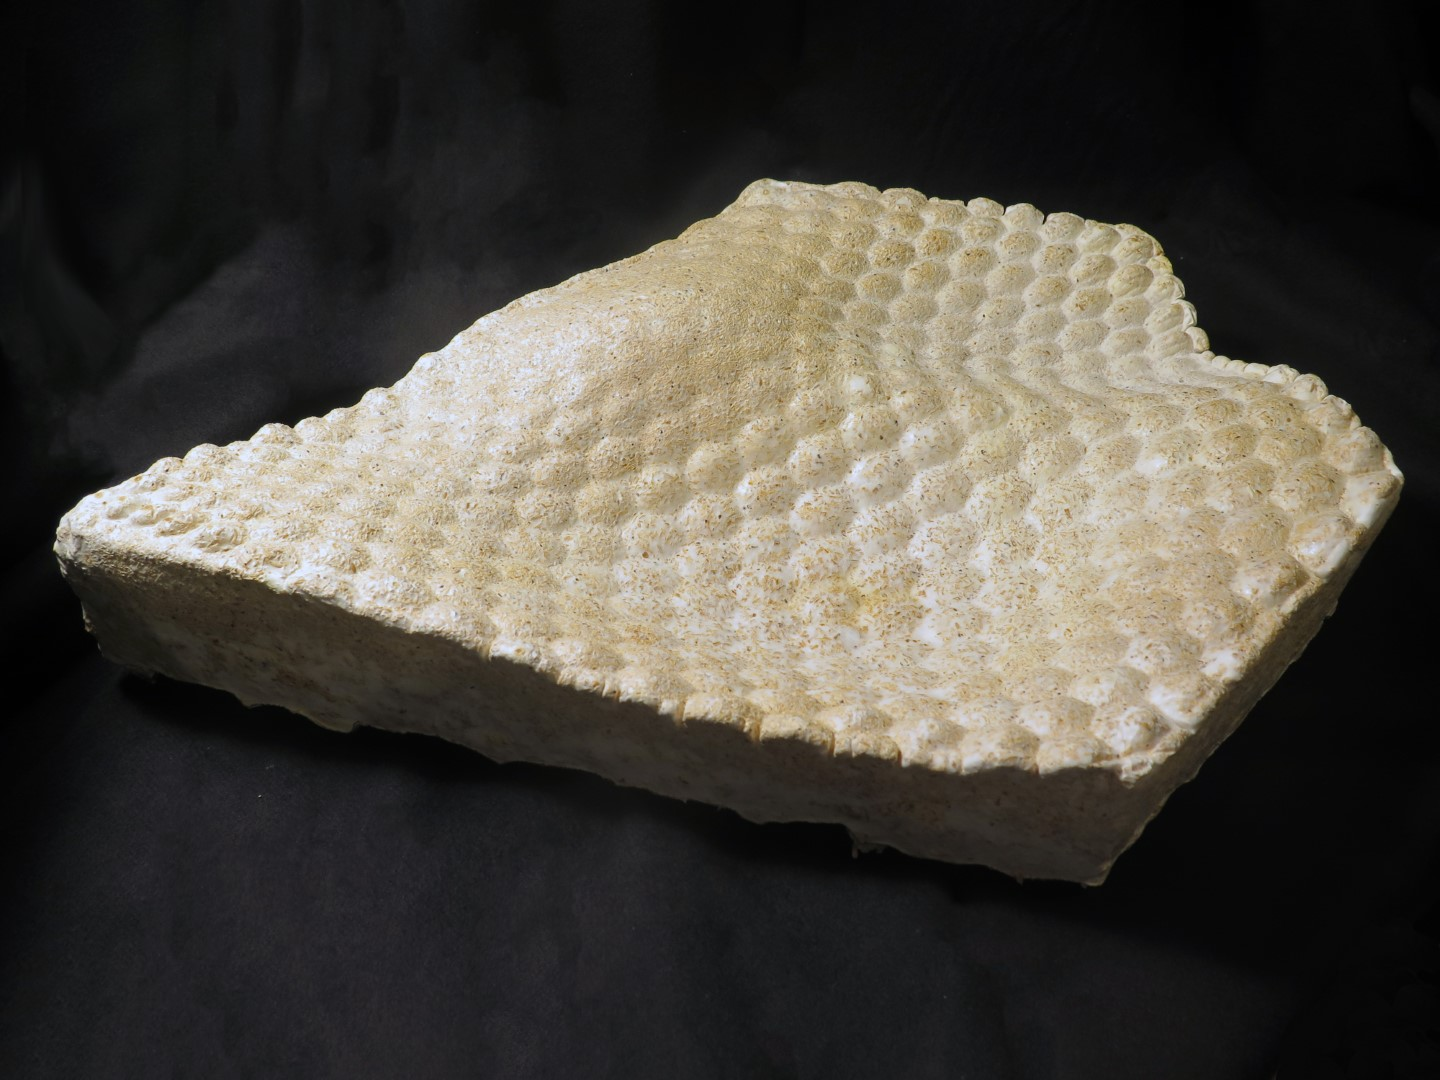 A creamy-coloured, slightly bumpy and curved panel created from a mould